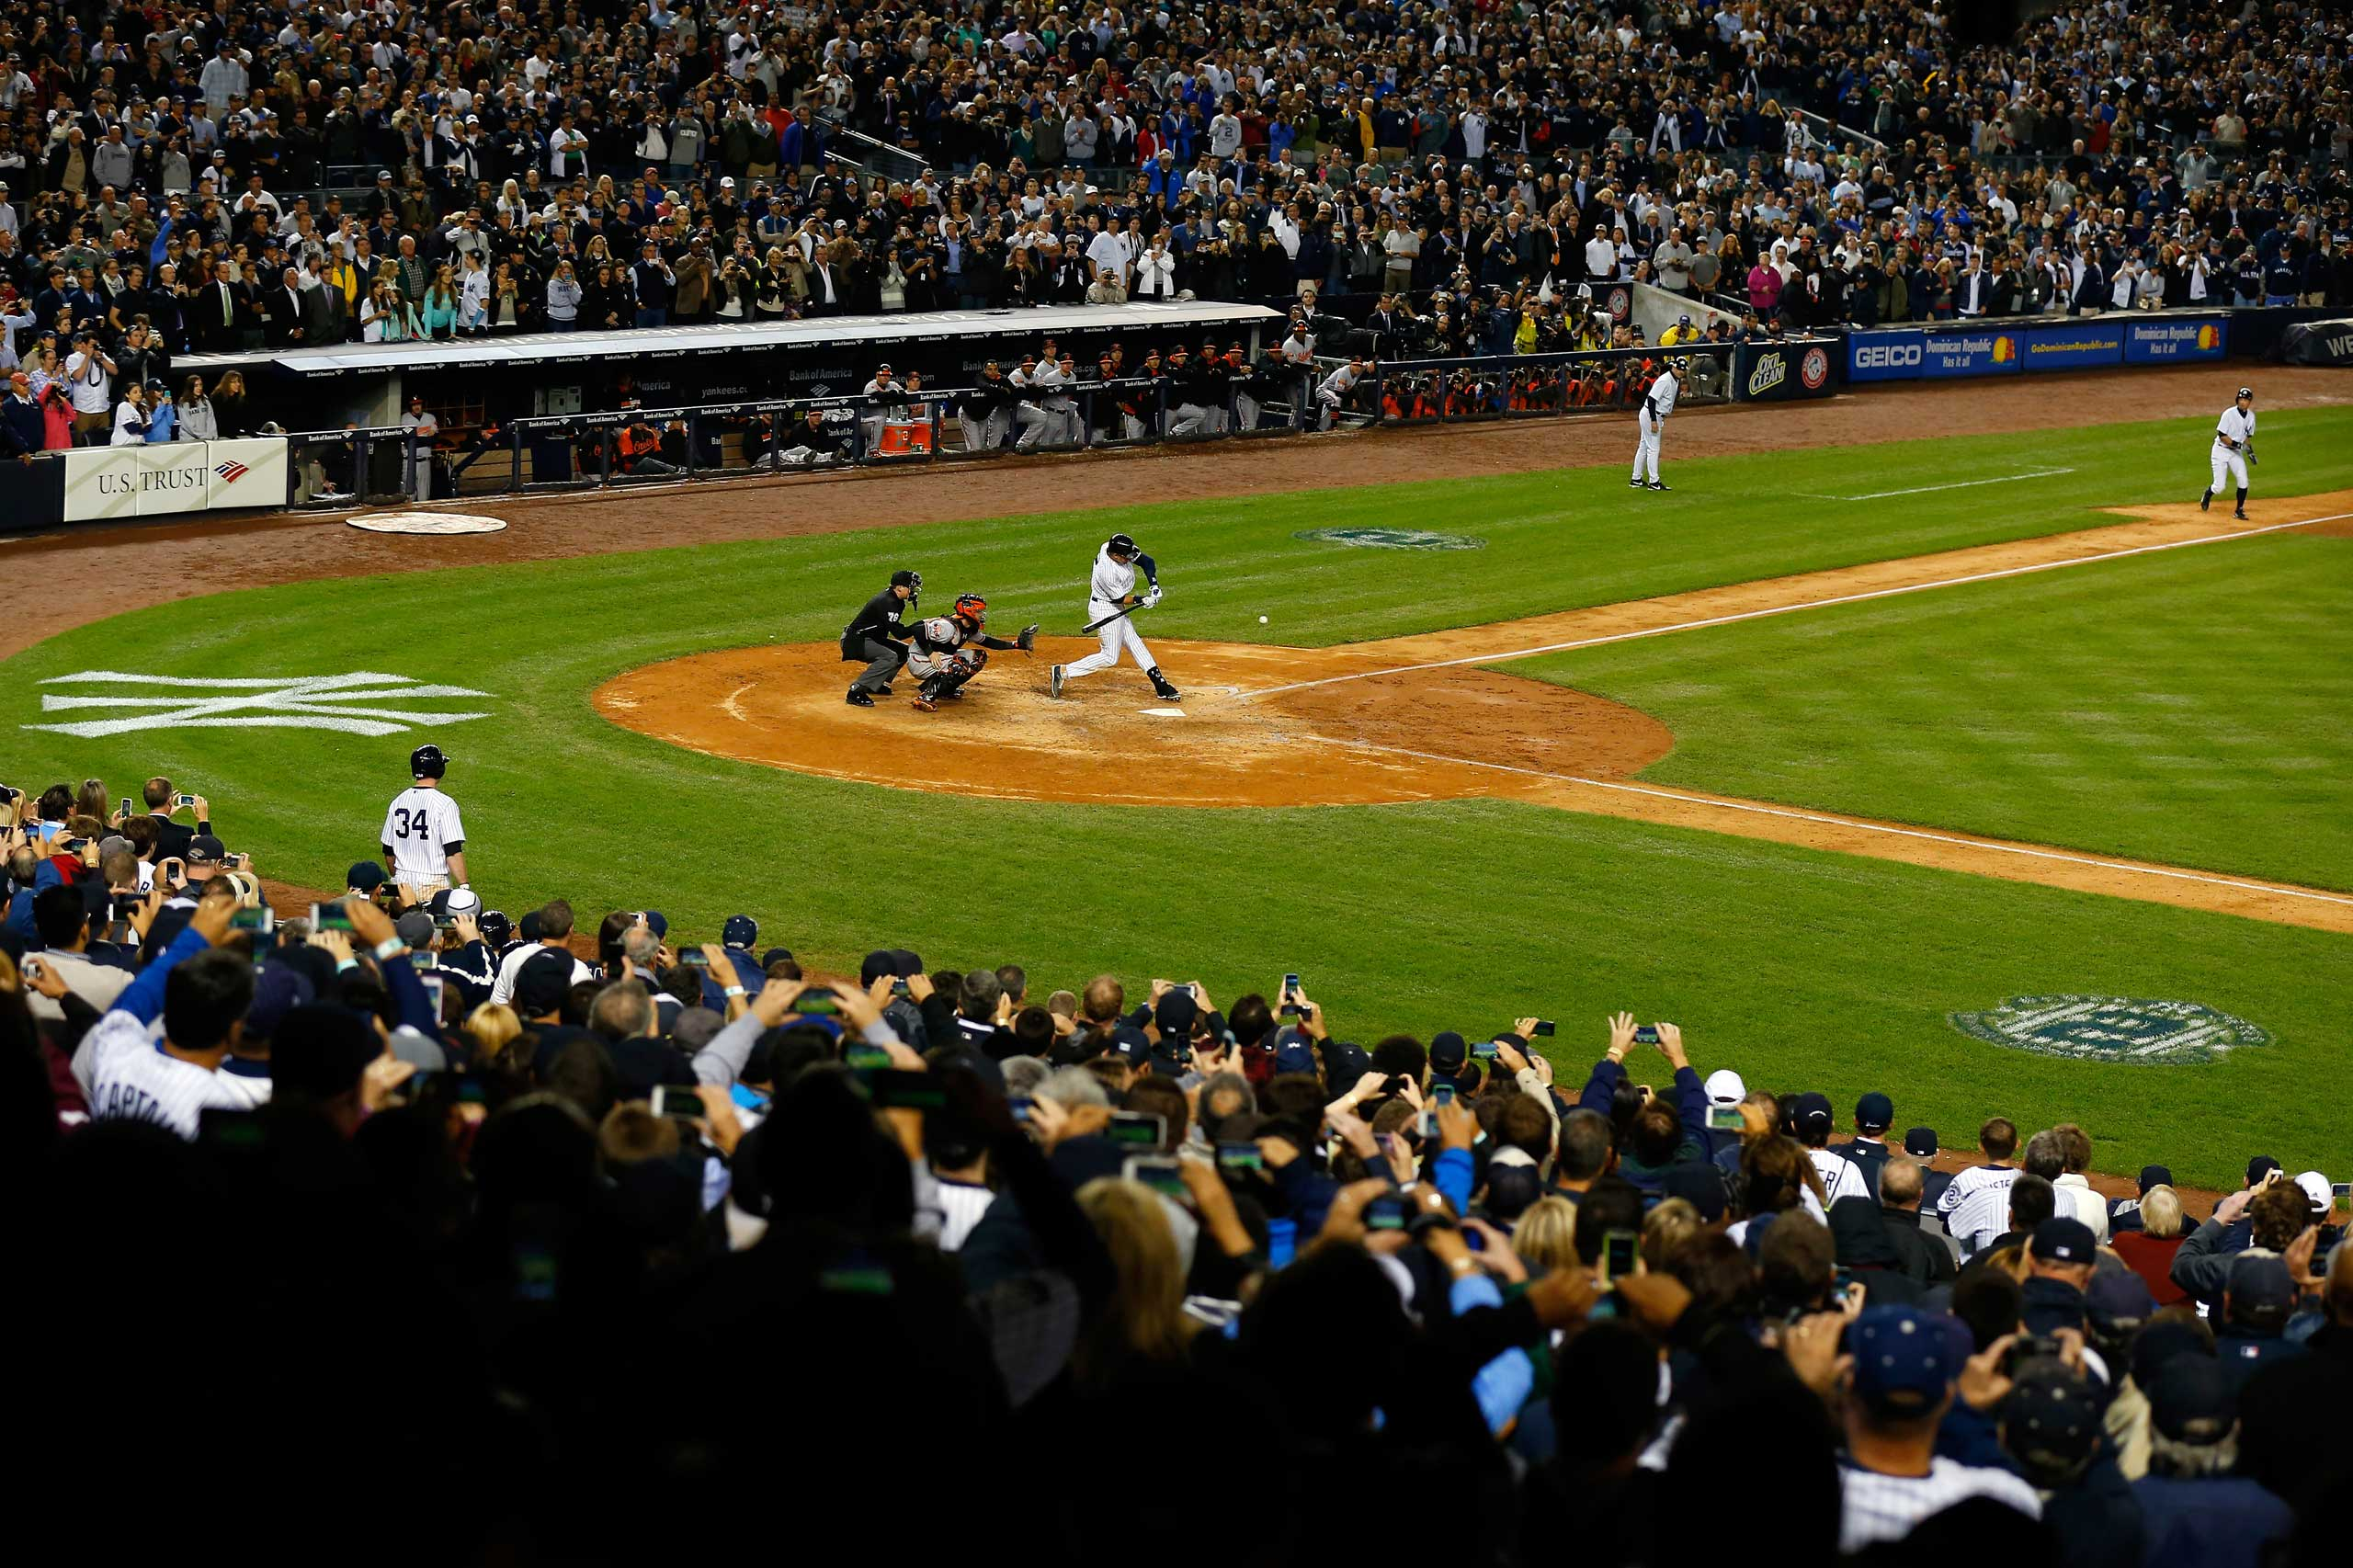 Derek Jeter hits a game winning RBI hit in the ninth inning against the Baltimore Orioles in his last game ever at Yankee Stadium on Sept. 25, 2014.